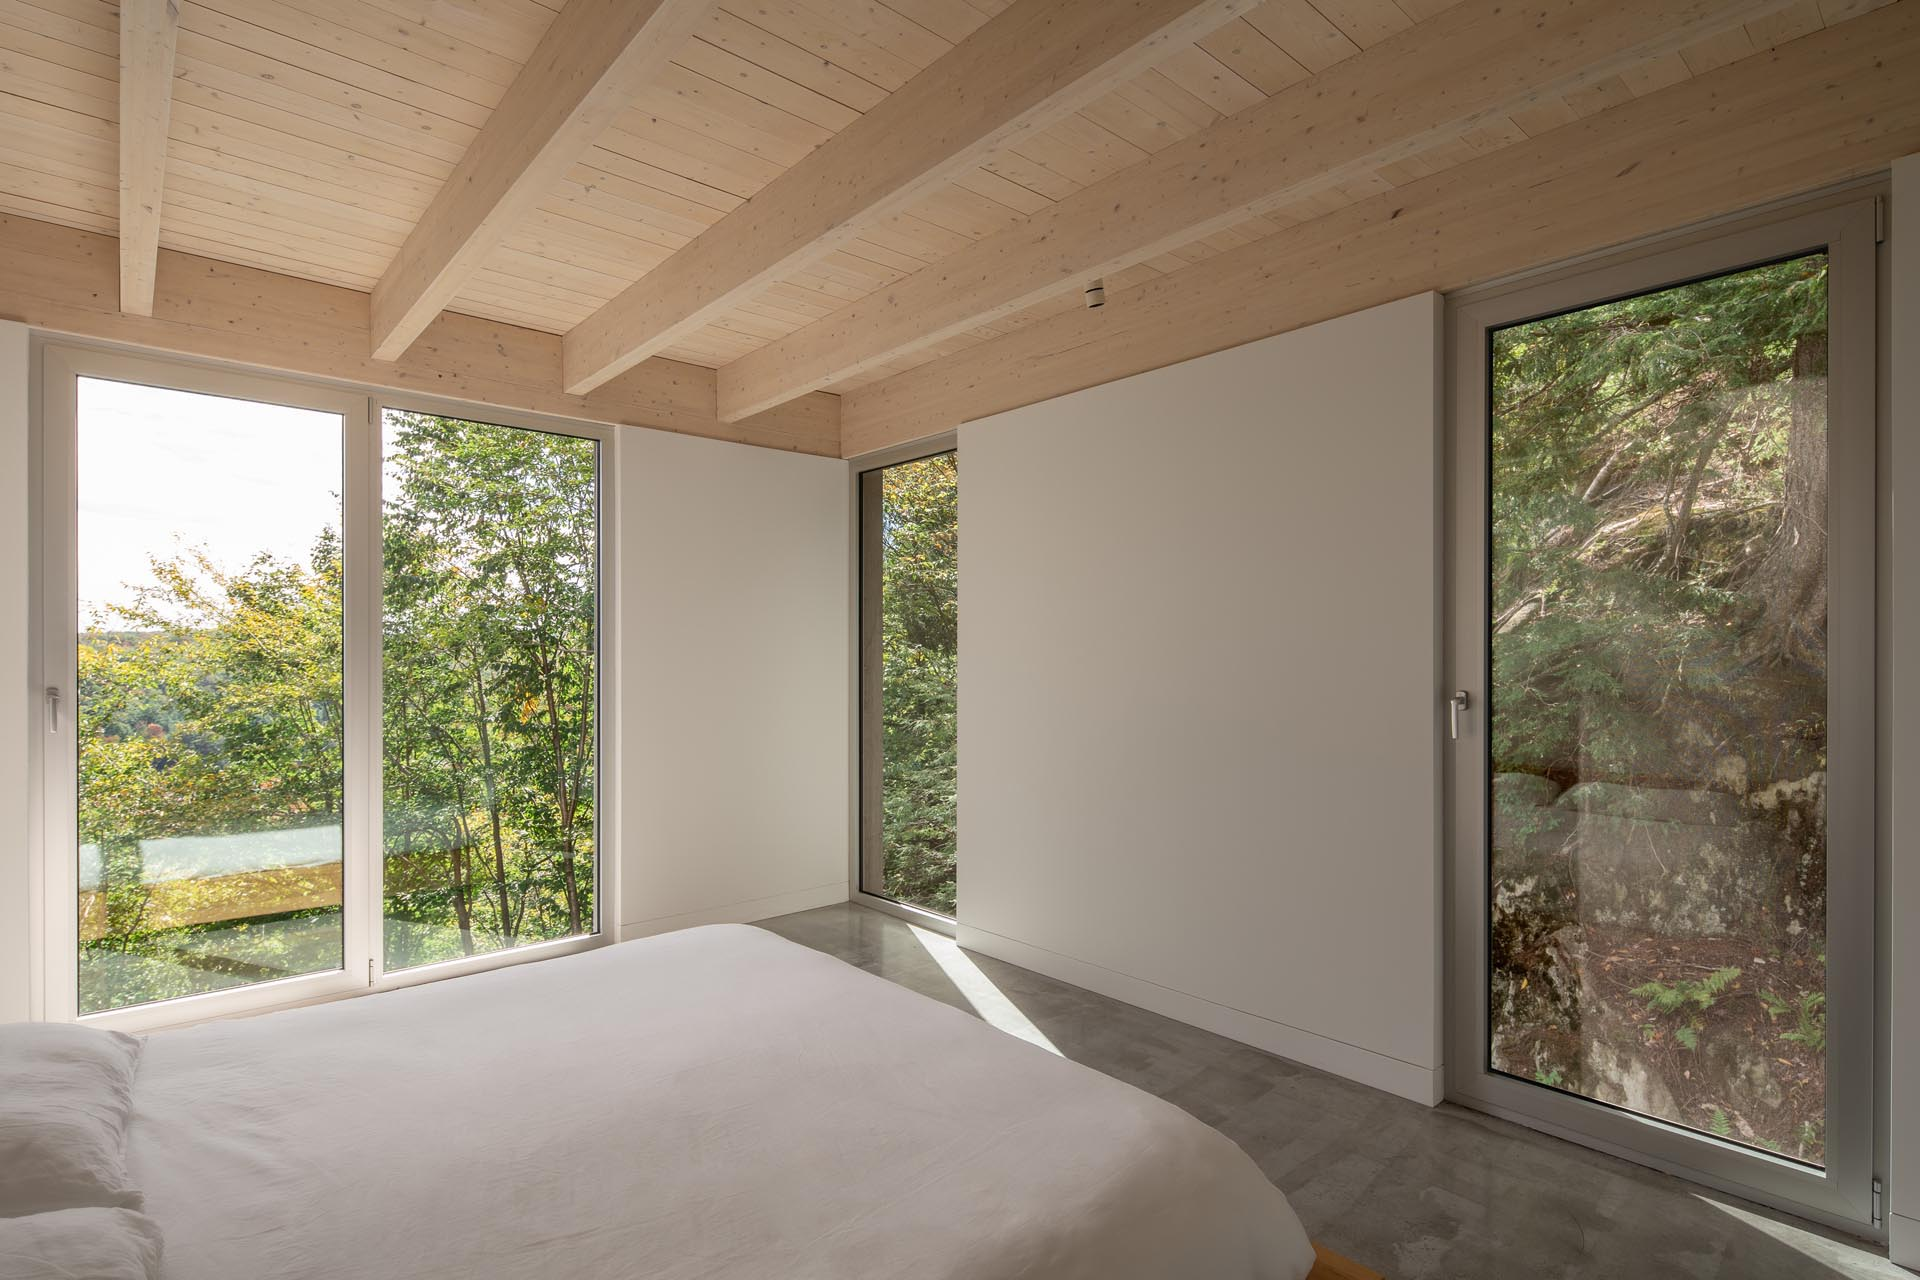 A master bedroom suite with minimal furniture has tall windows that frame the trees and rocks outside.